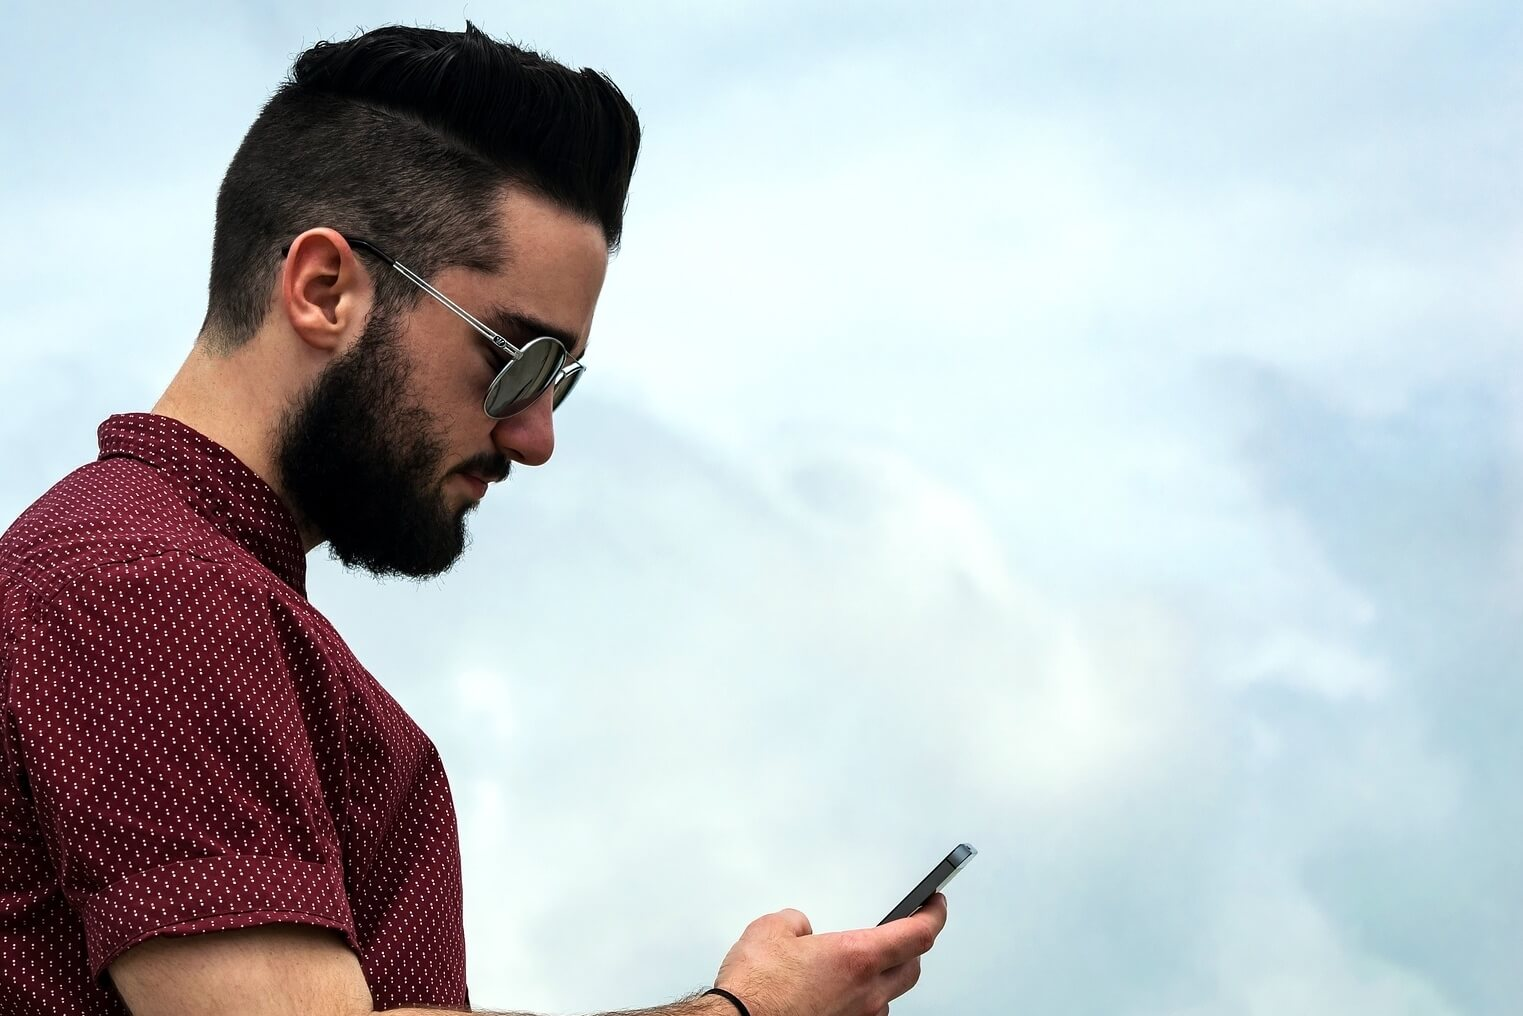 guy on mobile phone2